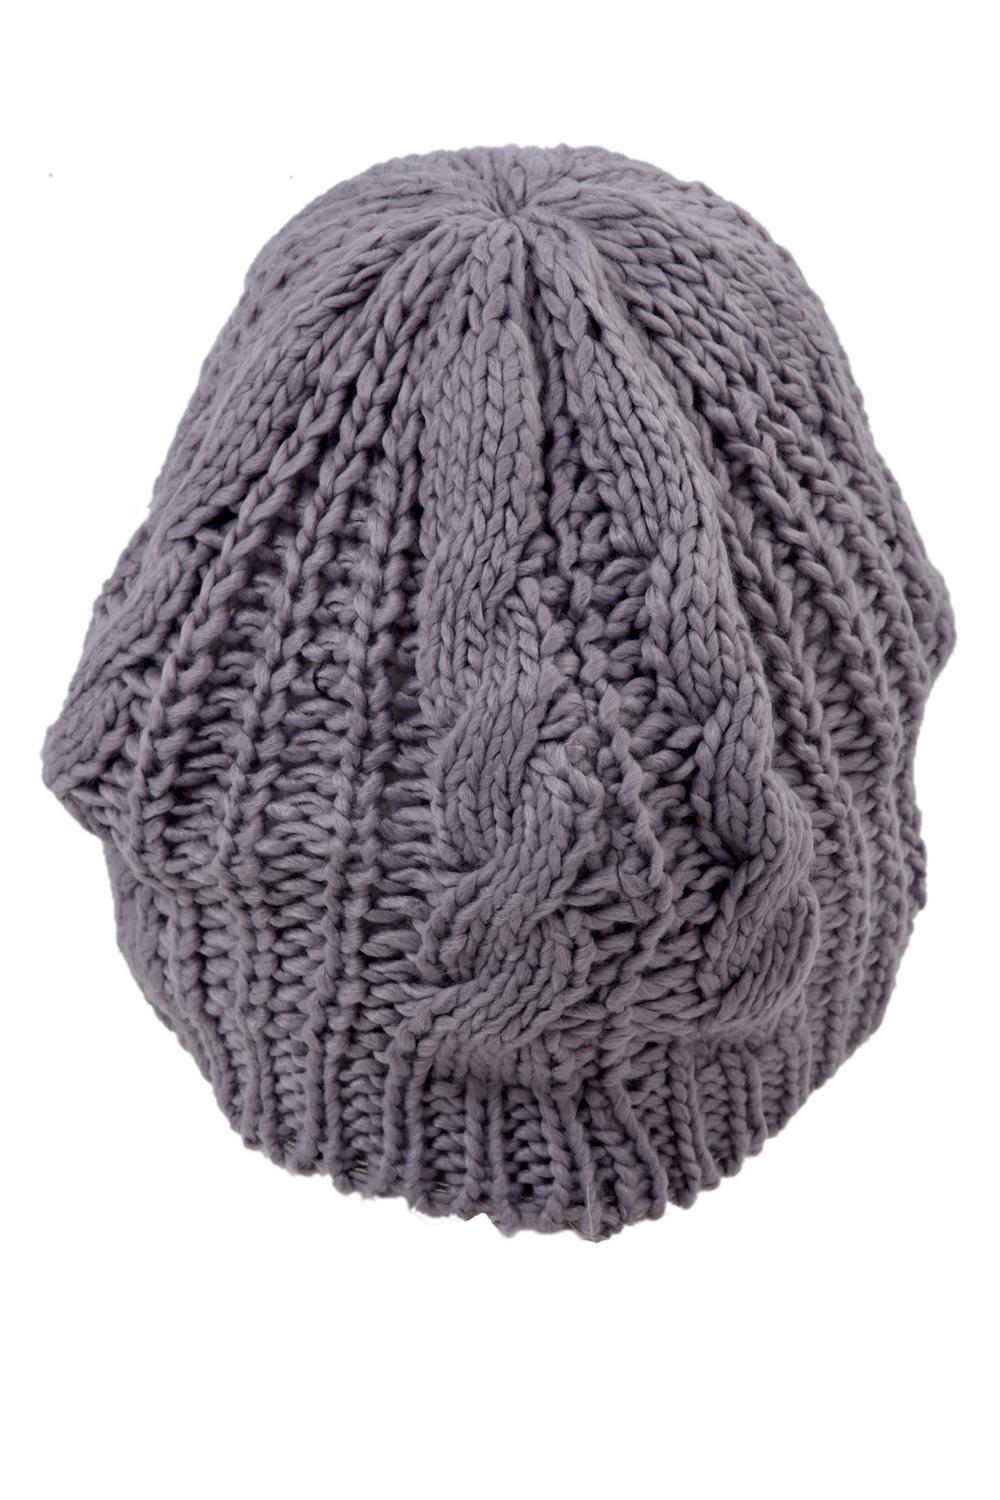 TOP  Braided Baggy Beanie Crochet Knitting Warm Winter Wool Hat Skullies Cap for Women 2017 winter women beanie skullies men hiphop hats knitted hat baggy crochet cap bonnets femme en laine homme gorros de lana